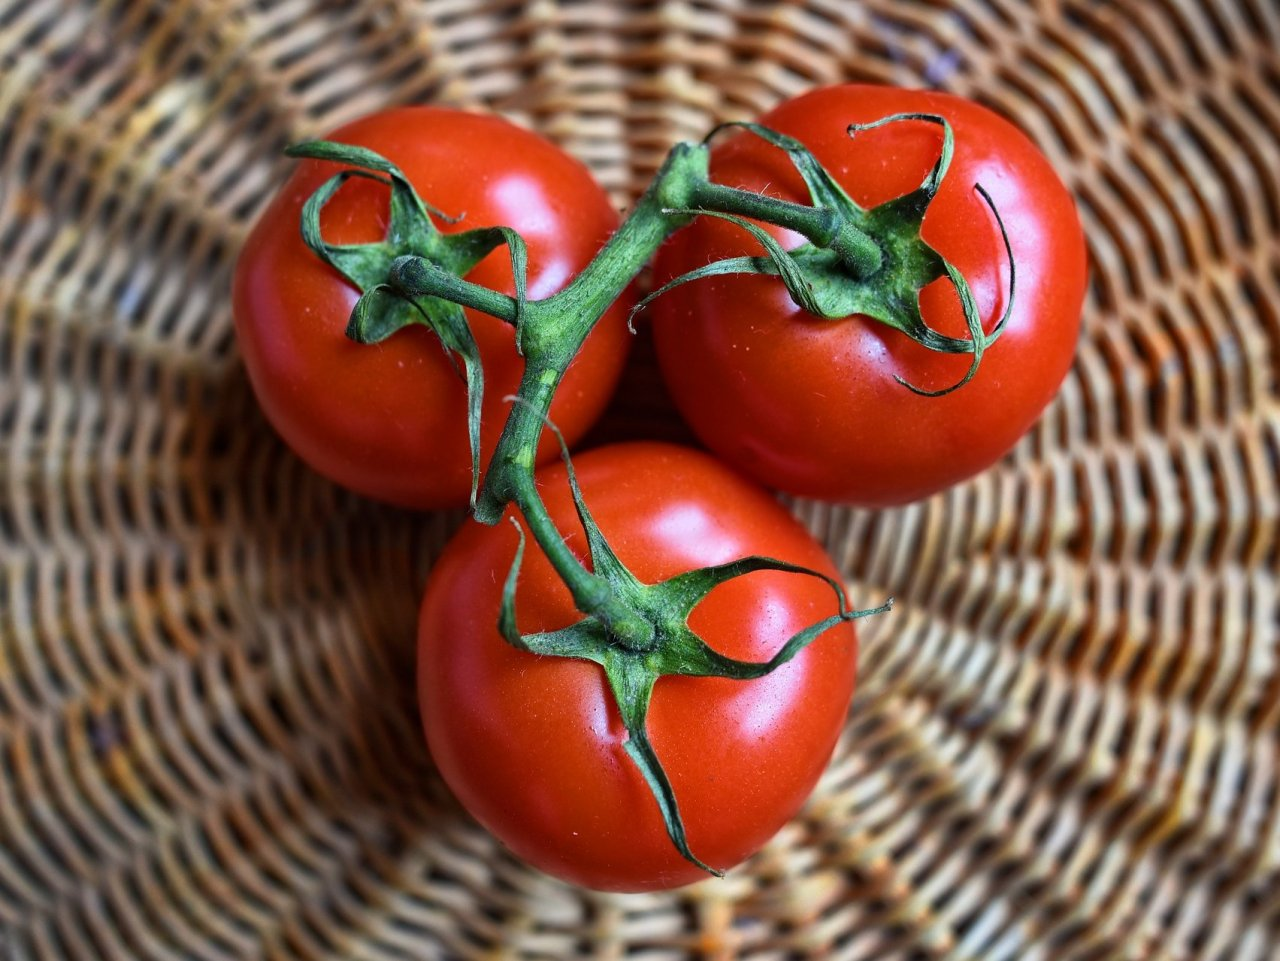 Three Tomatoes jigsaw puzzle